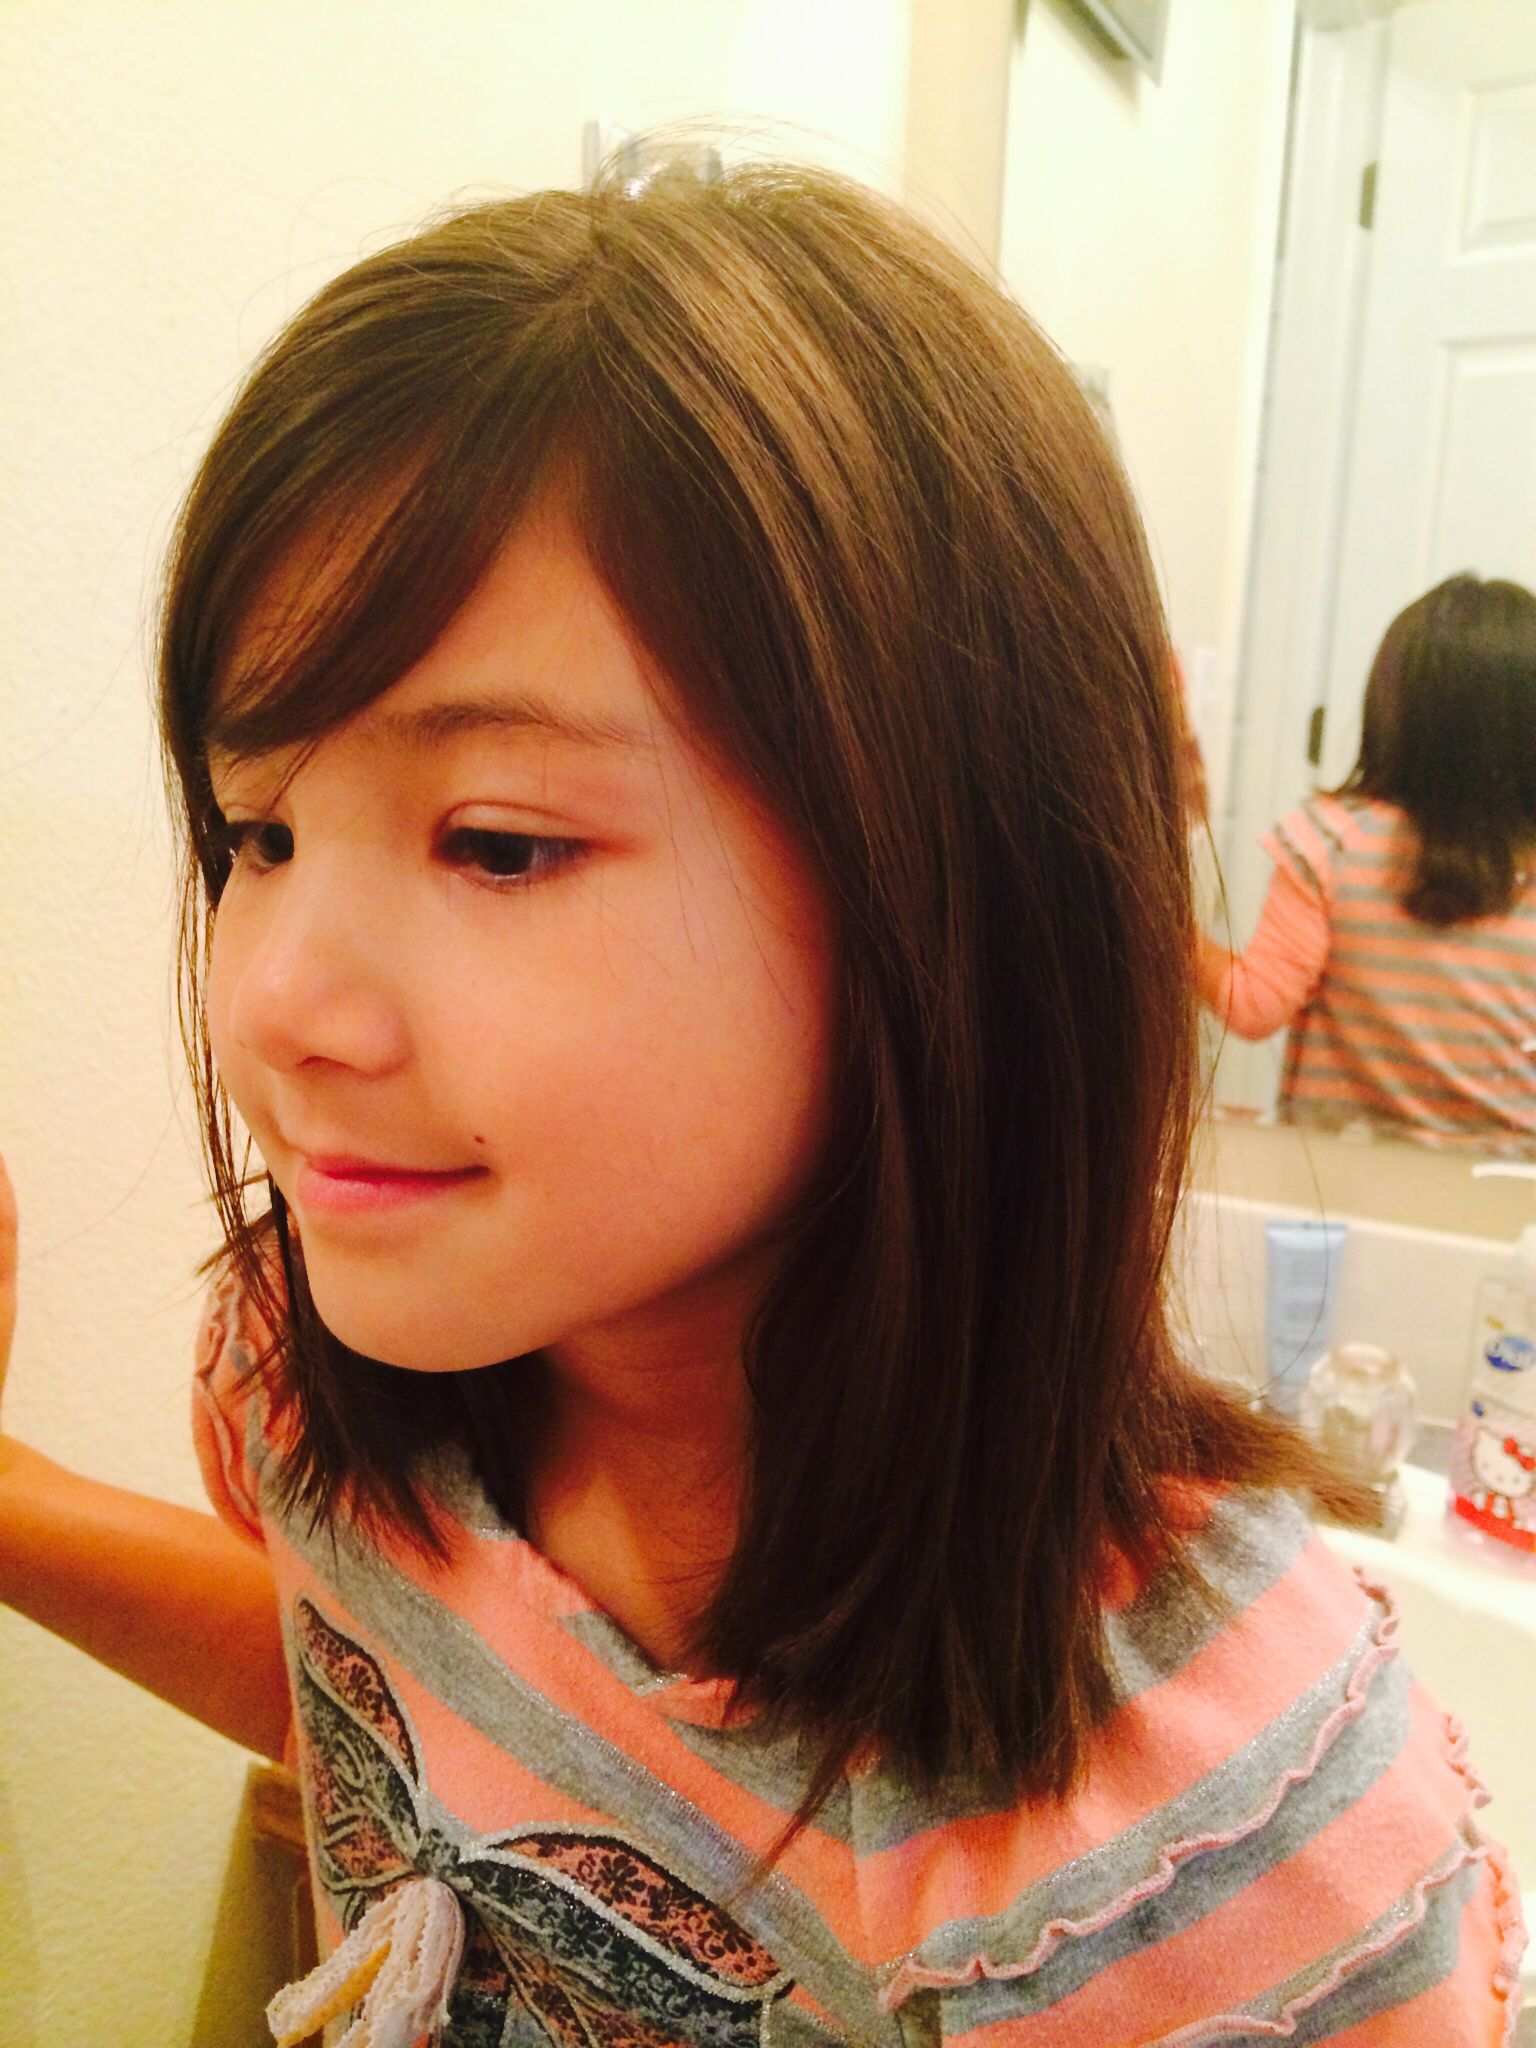 Medium Length Little Girl Hair Cut